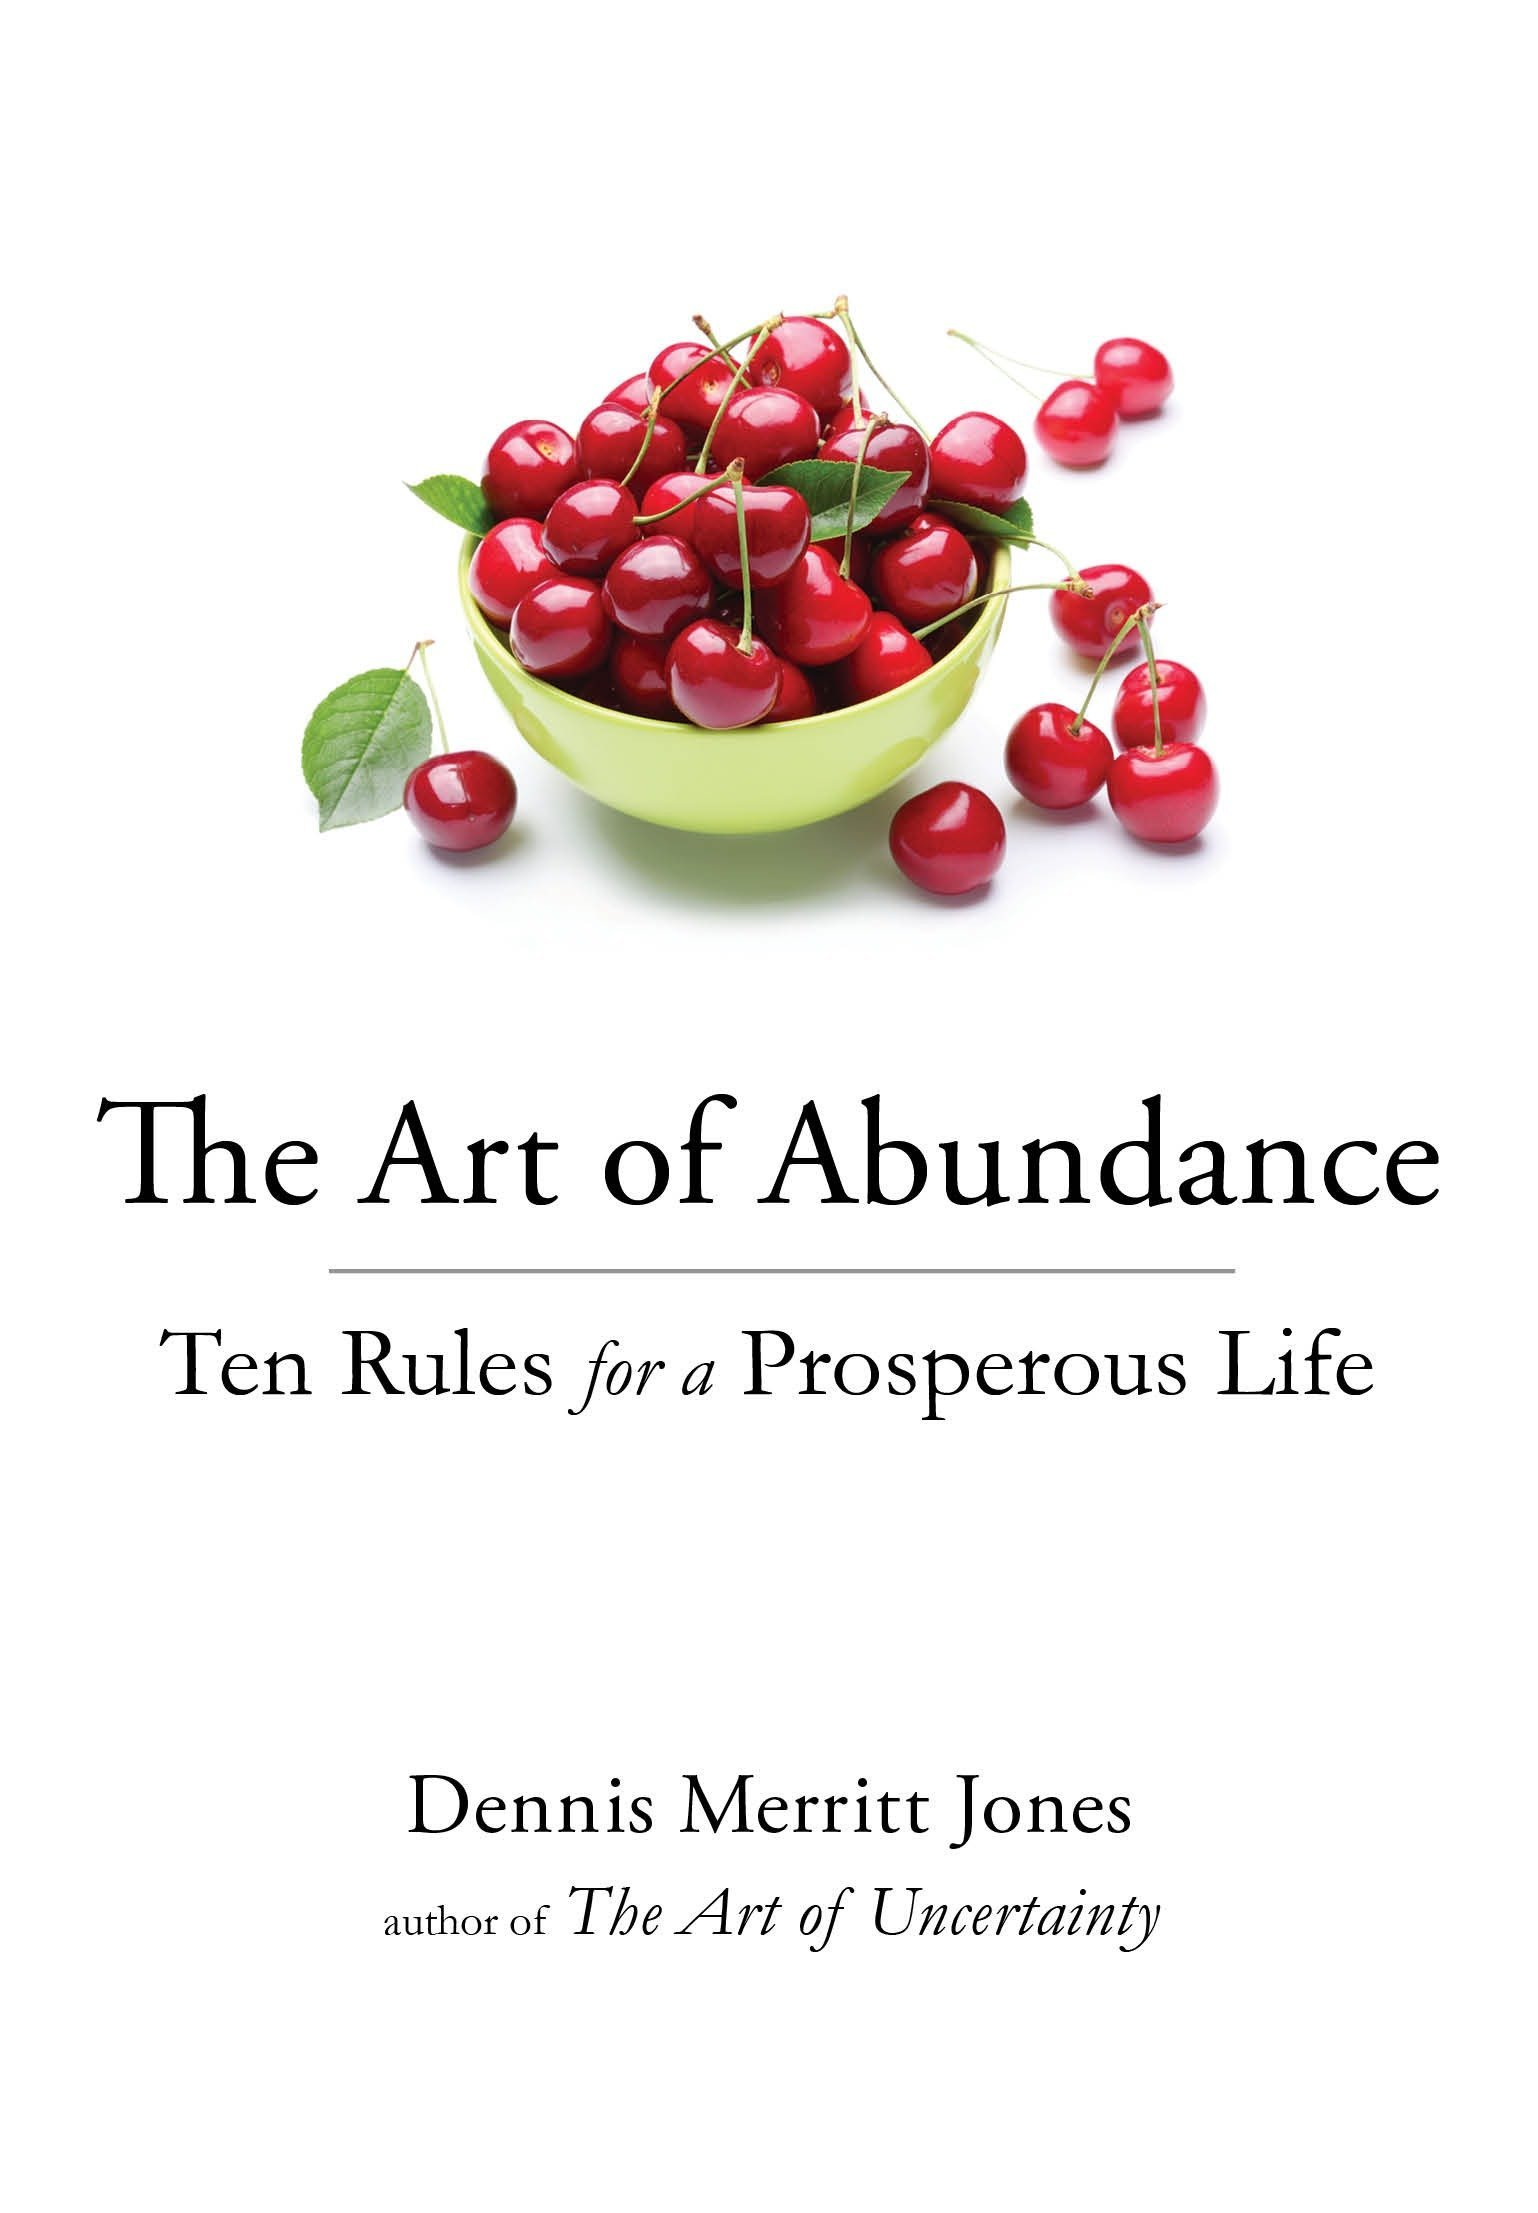 The Art of Abundance Ten Rules for a Prosperous Life